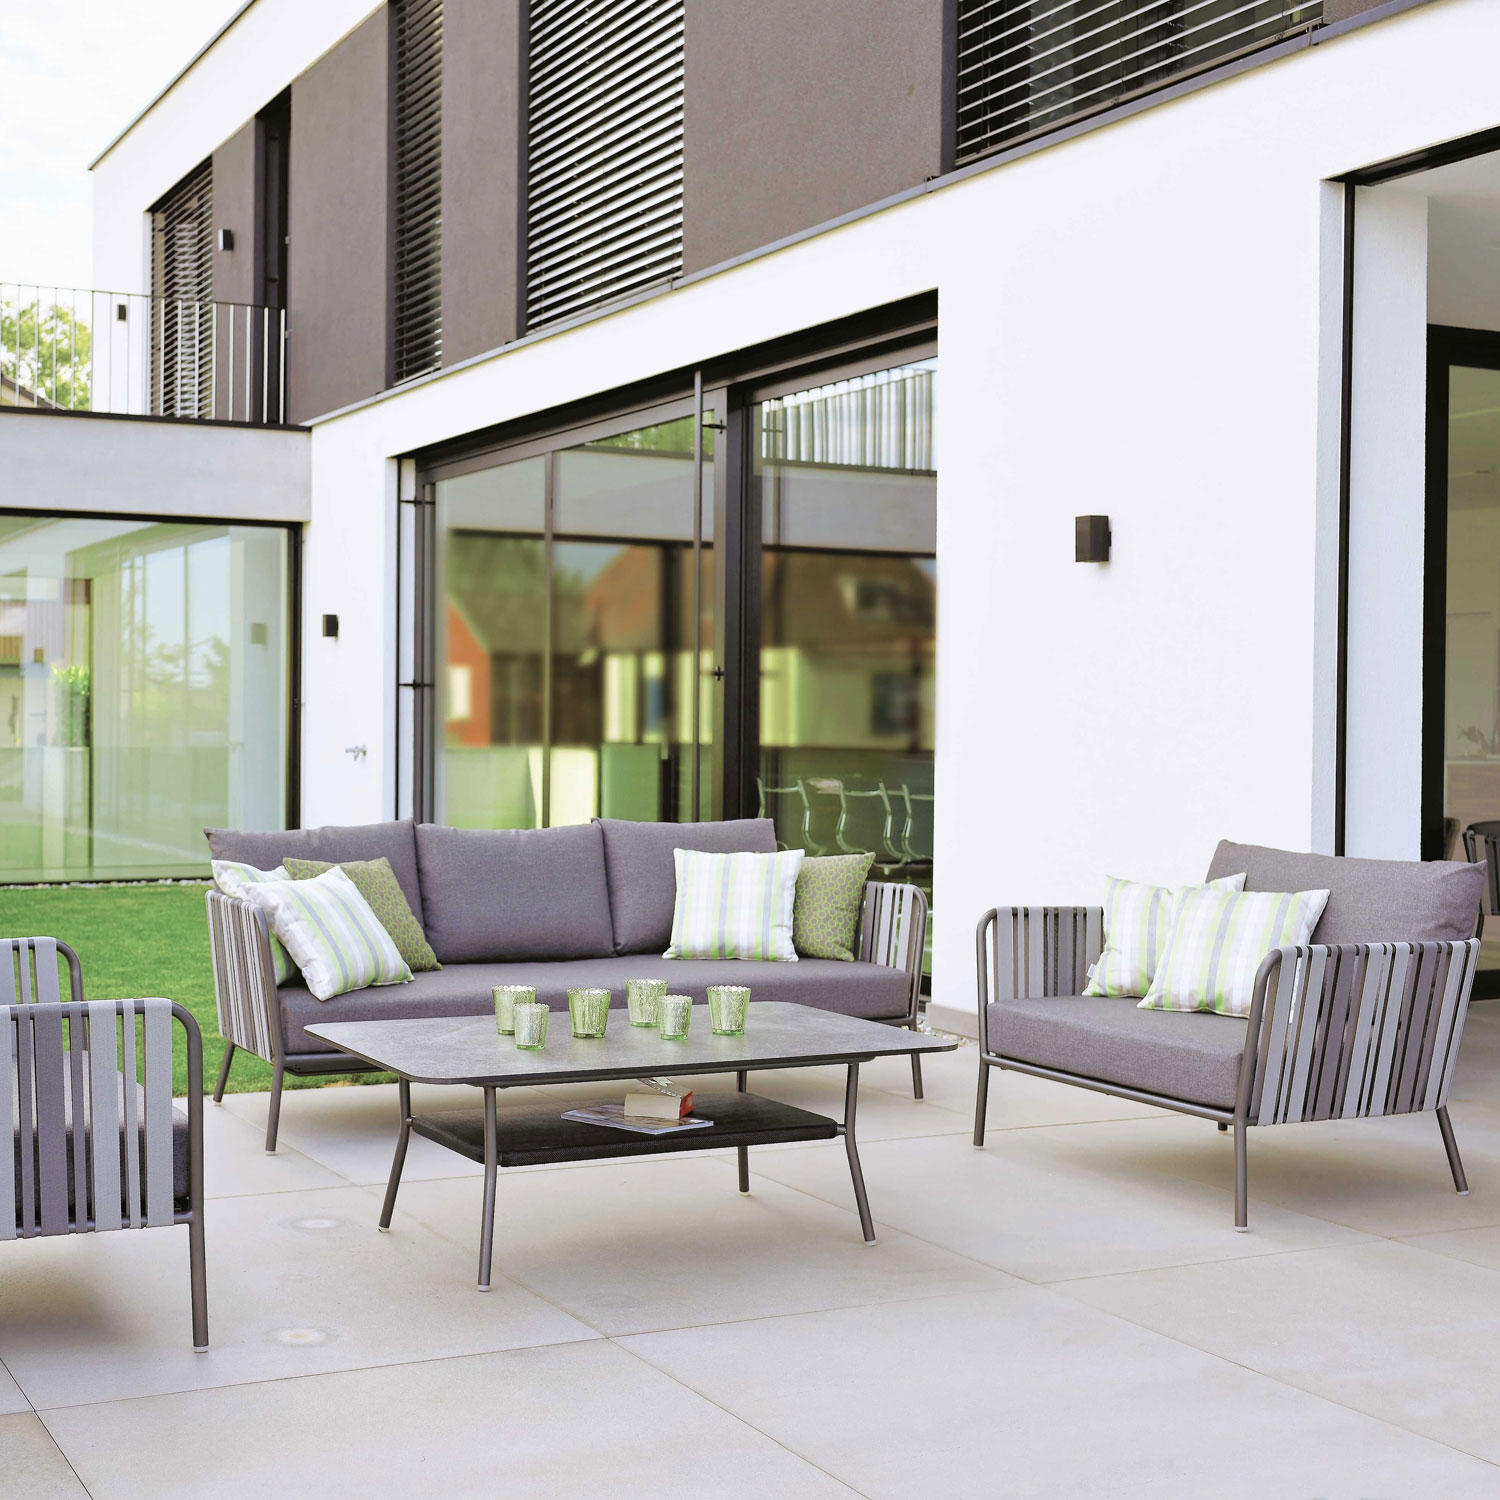 Space Lounge Sofa 3 Seater Aluminumanthracite Textile In Grey 2 Color With Cushion In Silk Grey by Outdoor Living